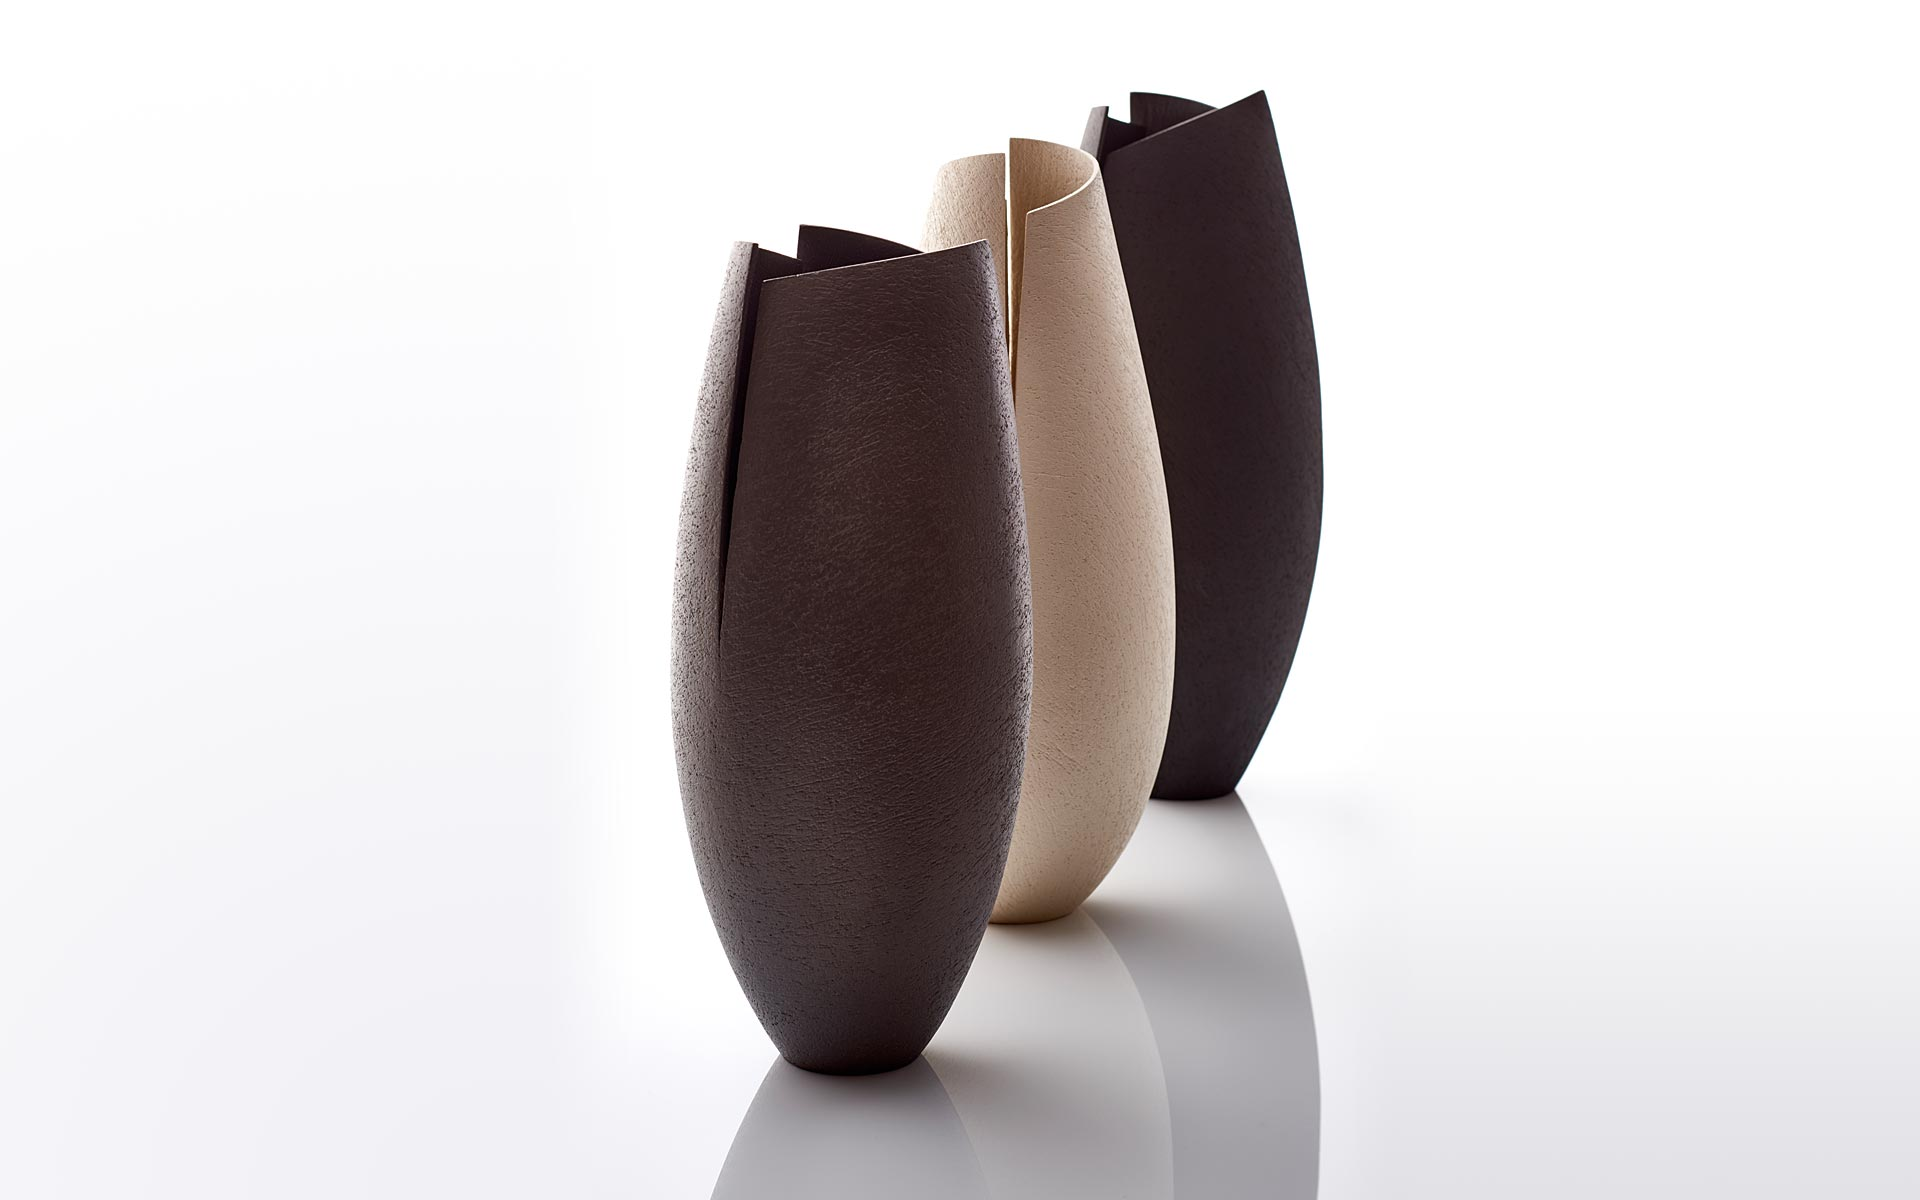 Three Cut Vessels